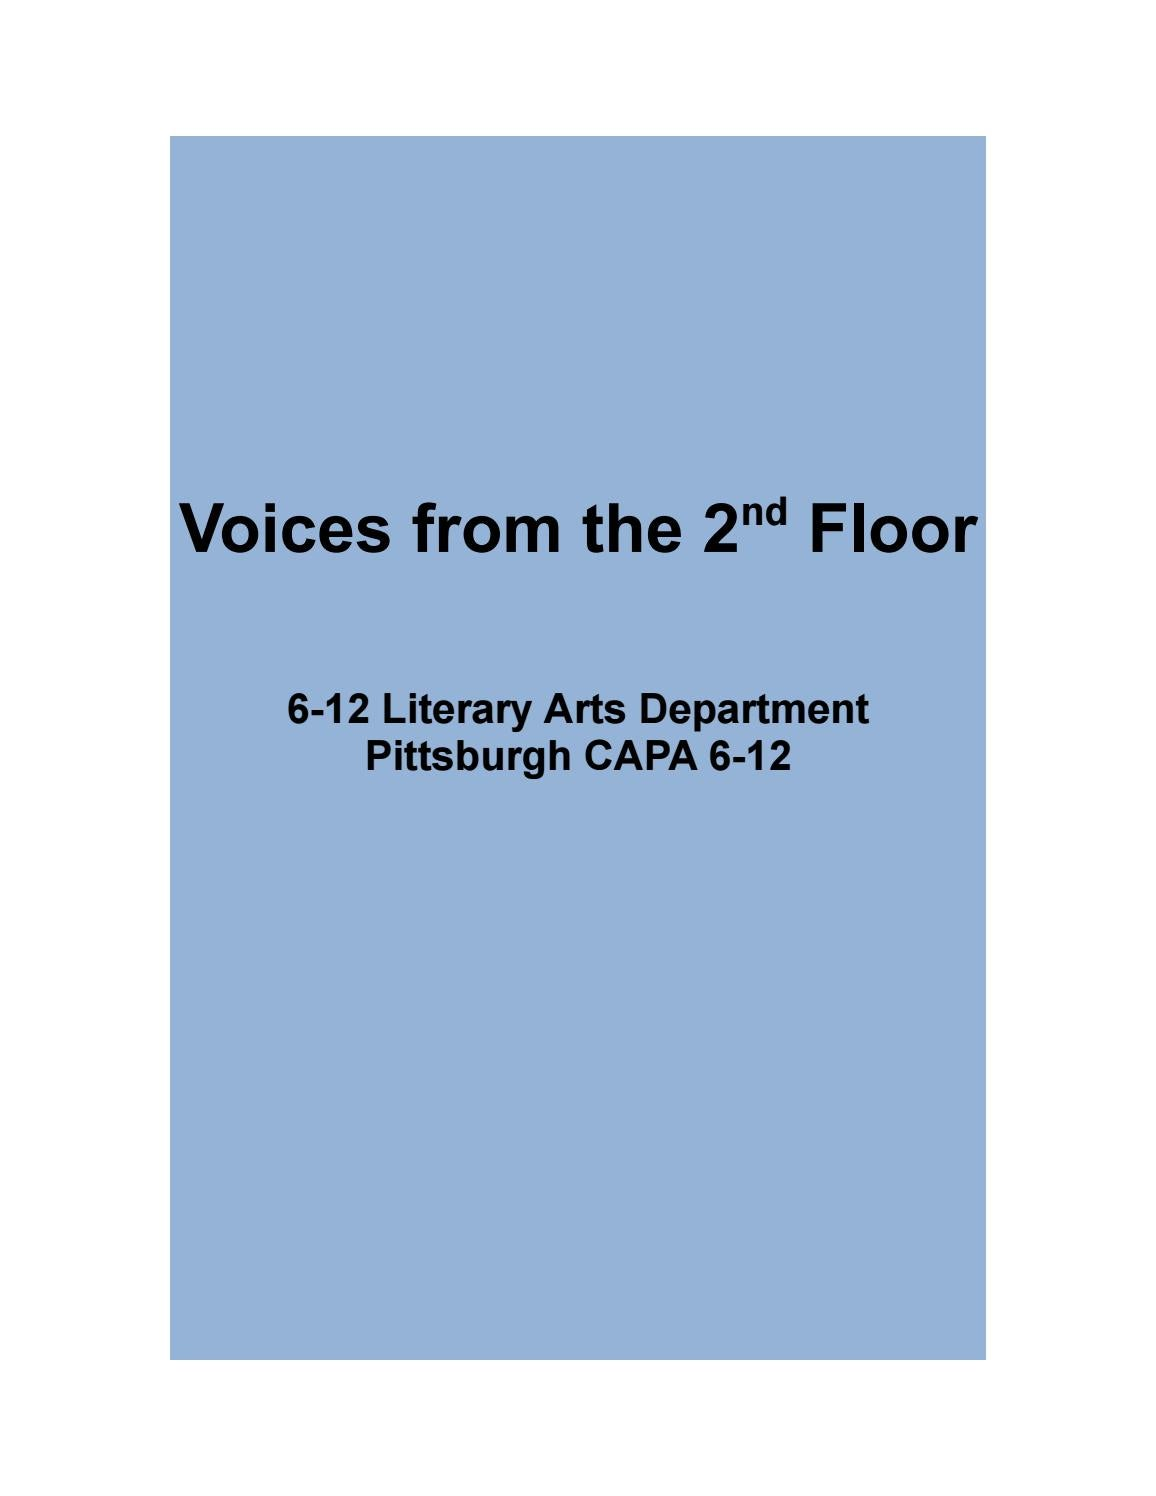 Voices from the 2nd Floor: Spring 2017 by Mara Cregan - issuu